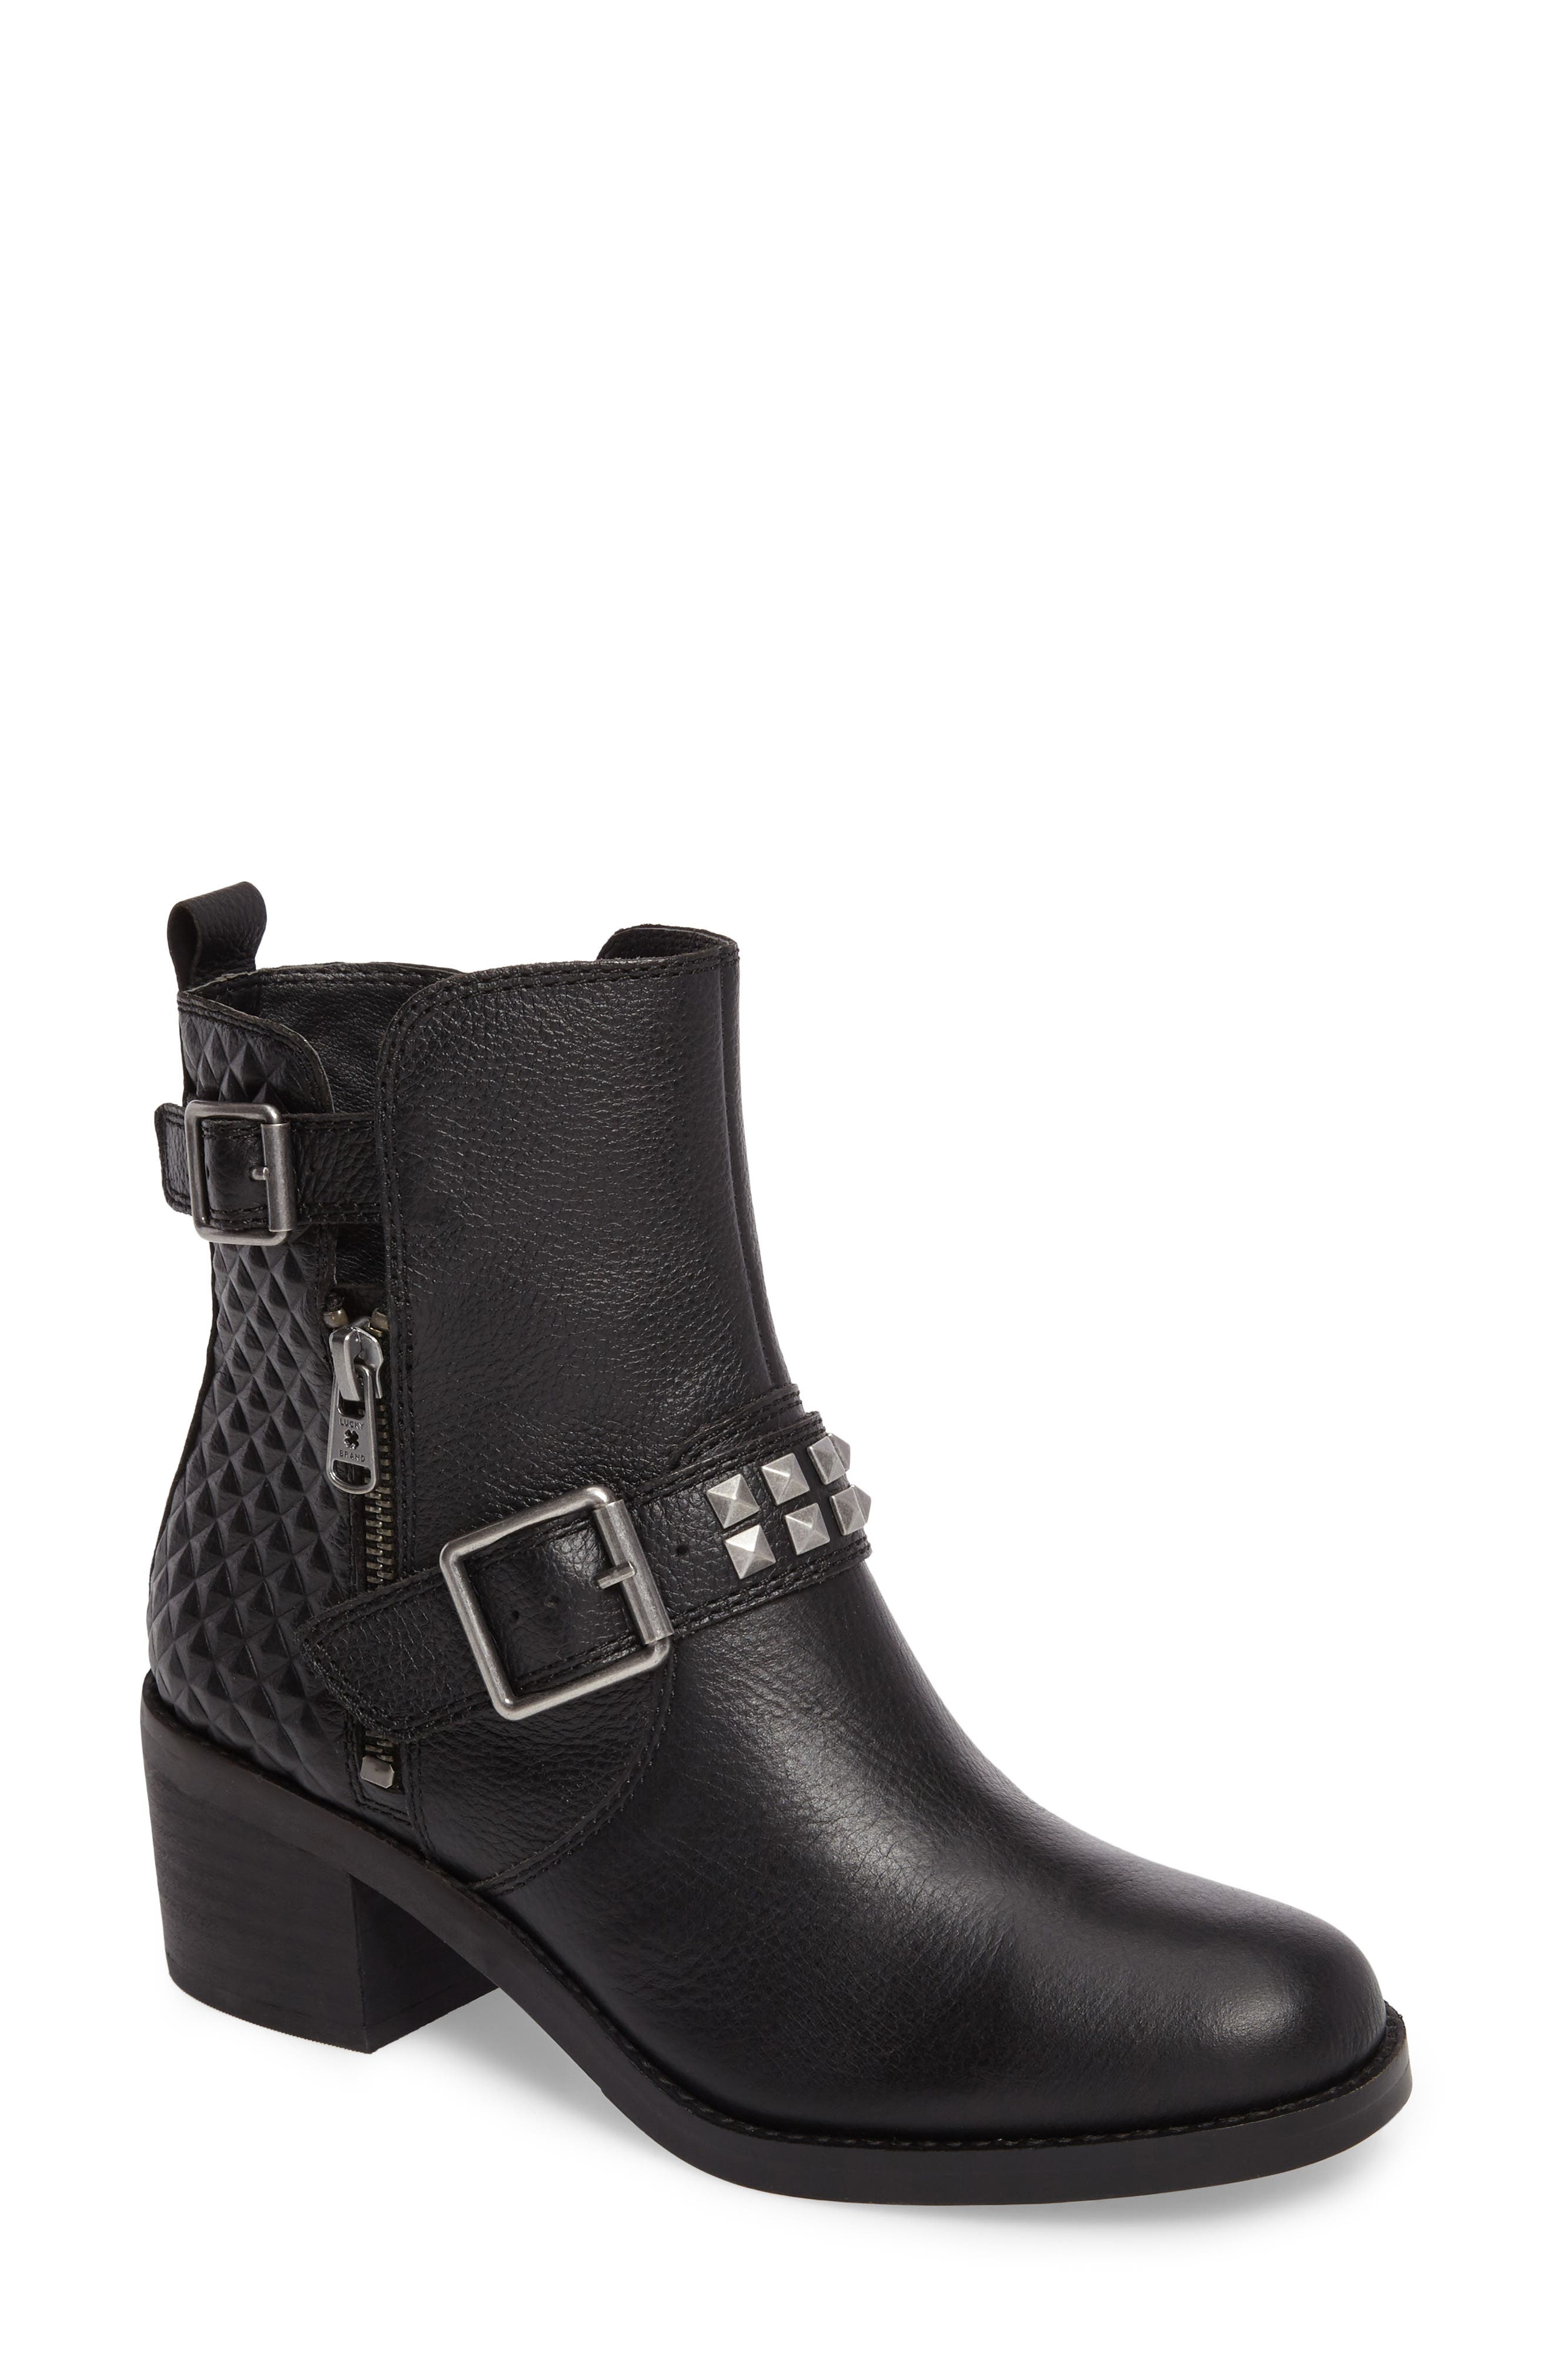 Main Image - Lucky Brand Cantini II Bootie (Women)